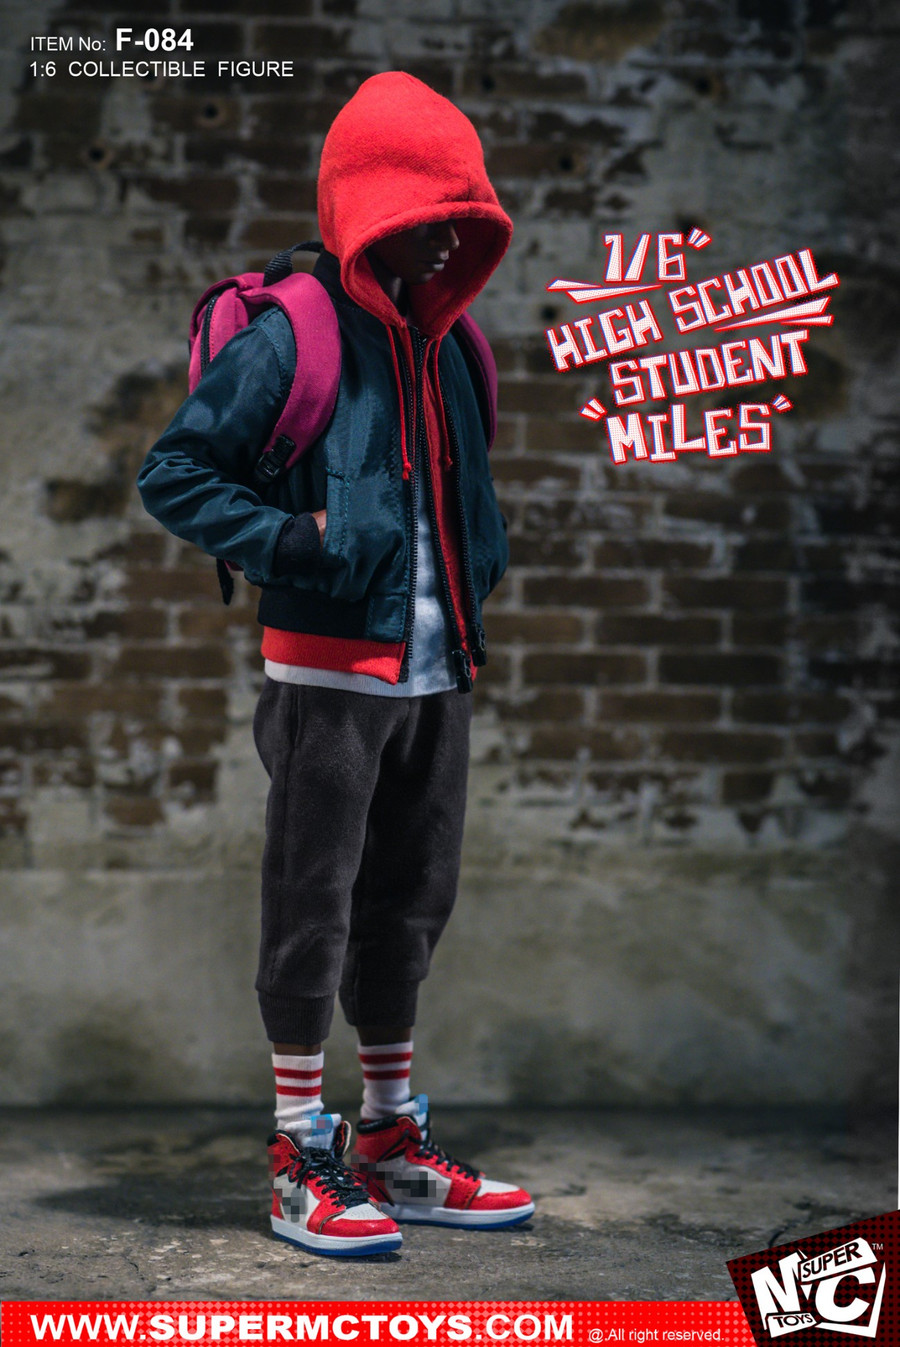 Super MC Toys - High School Student Miles Action Figure